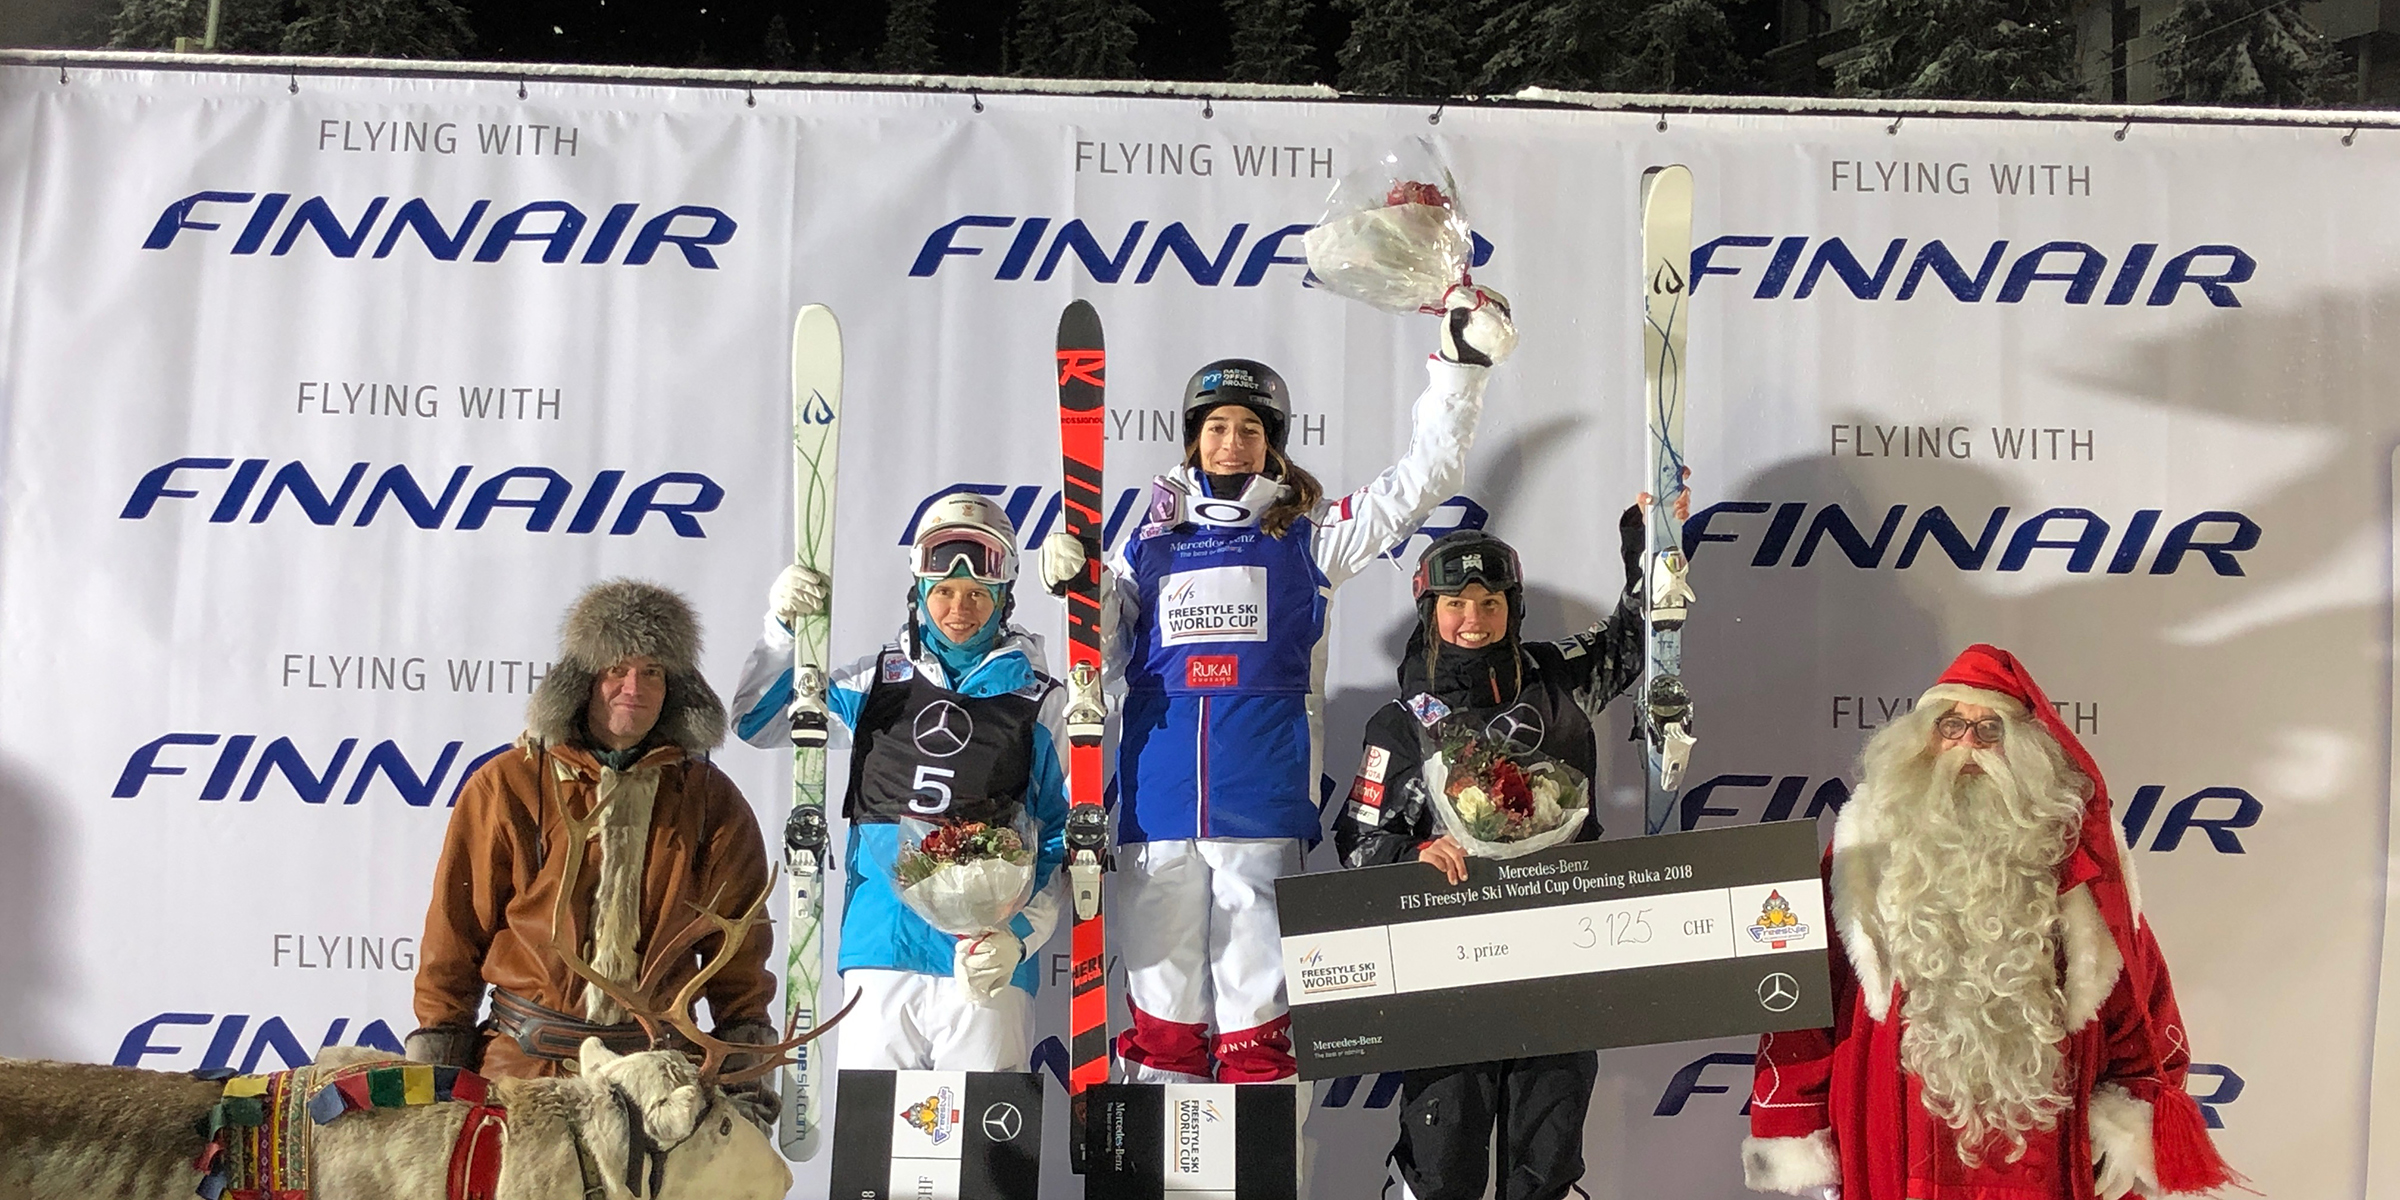 Tess Johnson, who took third in Friday's FIS Freestyle World Cup moguls event, shared the podium with France's Perrine Laffont, who came in first, and Kazakhstan's Yulia Galysheva, who came in second. (Matt Gnoza - U.S. Ski & Snowboard)